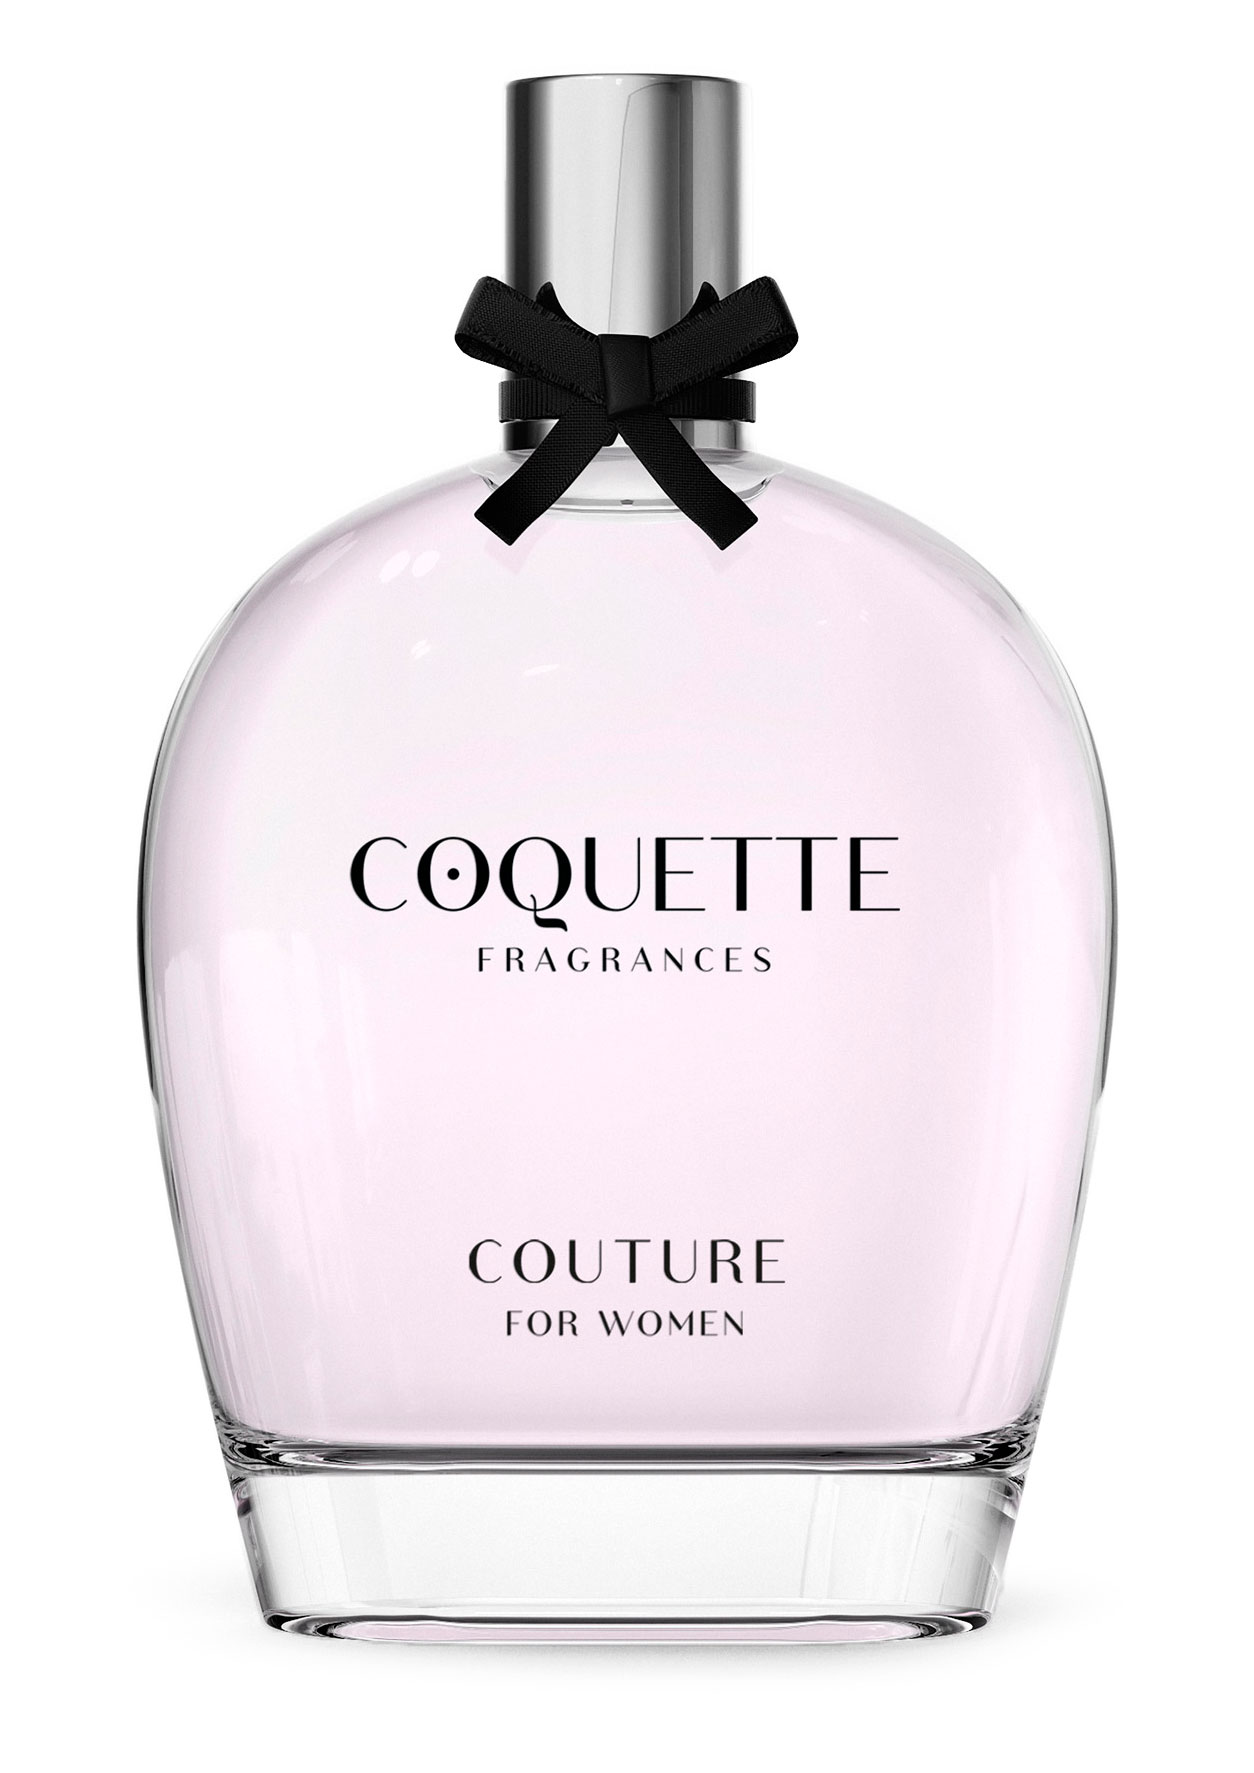 Coquette-Fragrances-Couture-Magasalfa-2